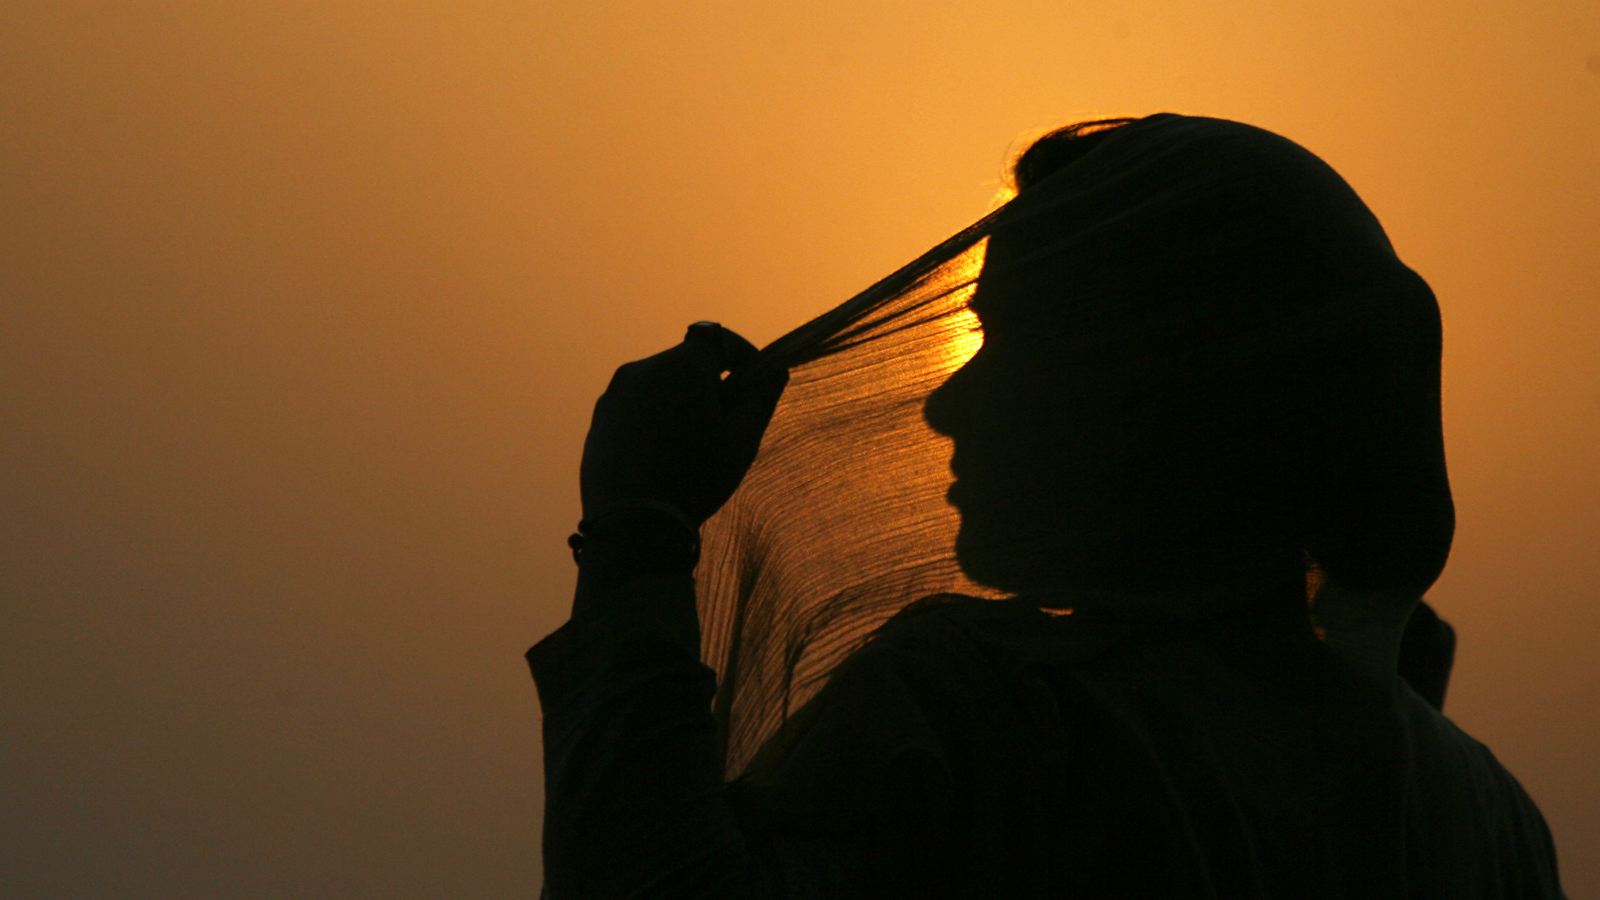 A woman adjusts her scarf as the sun sets over Kashmir's Dal Lake in Srinagar July 18, 2010. REUTERS/Danish Ismail (INDIAN-ADMINISTERED KASHMIR - Tags: ENVIRONMENT SOCIETY)